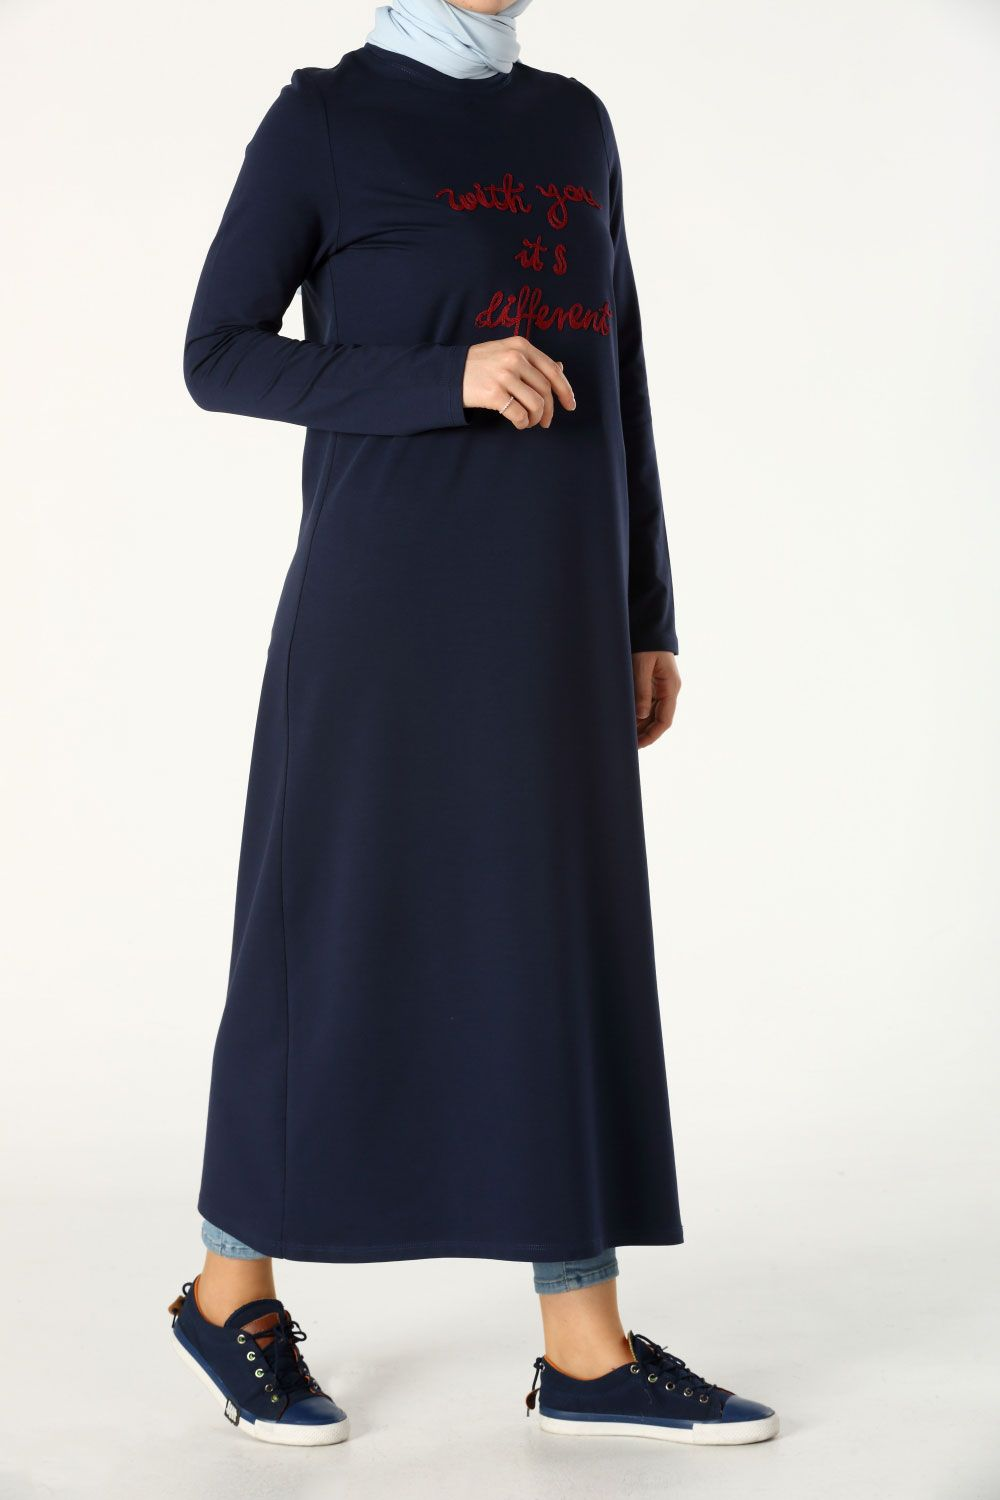 3ff17887ff Clothing. - · Navy Blue Combed Tunıc · COMBED TUNIC